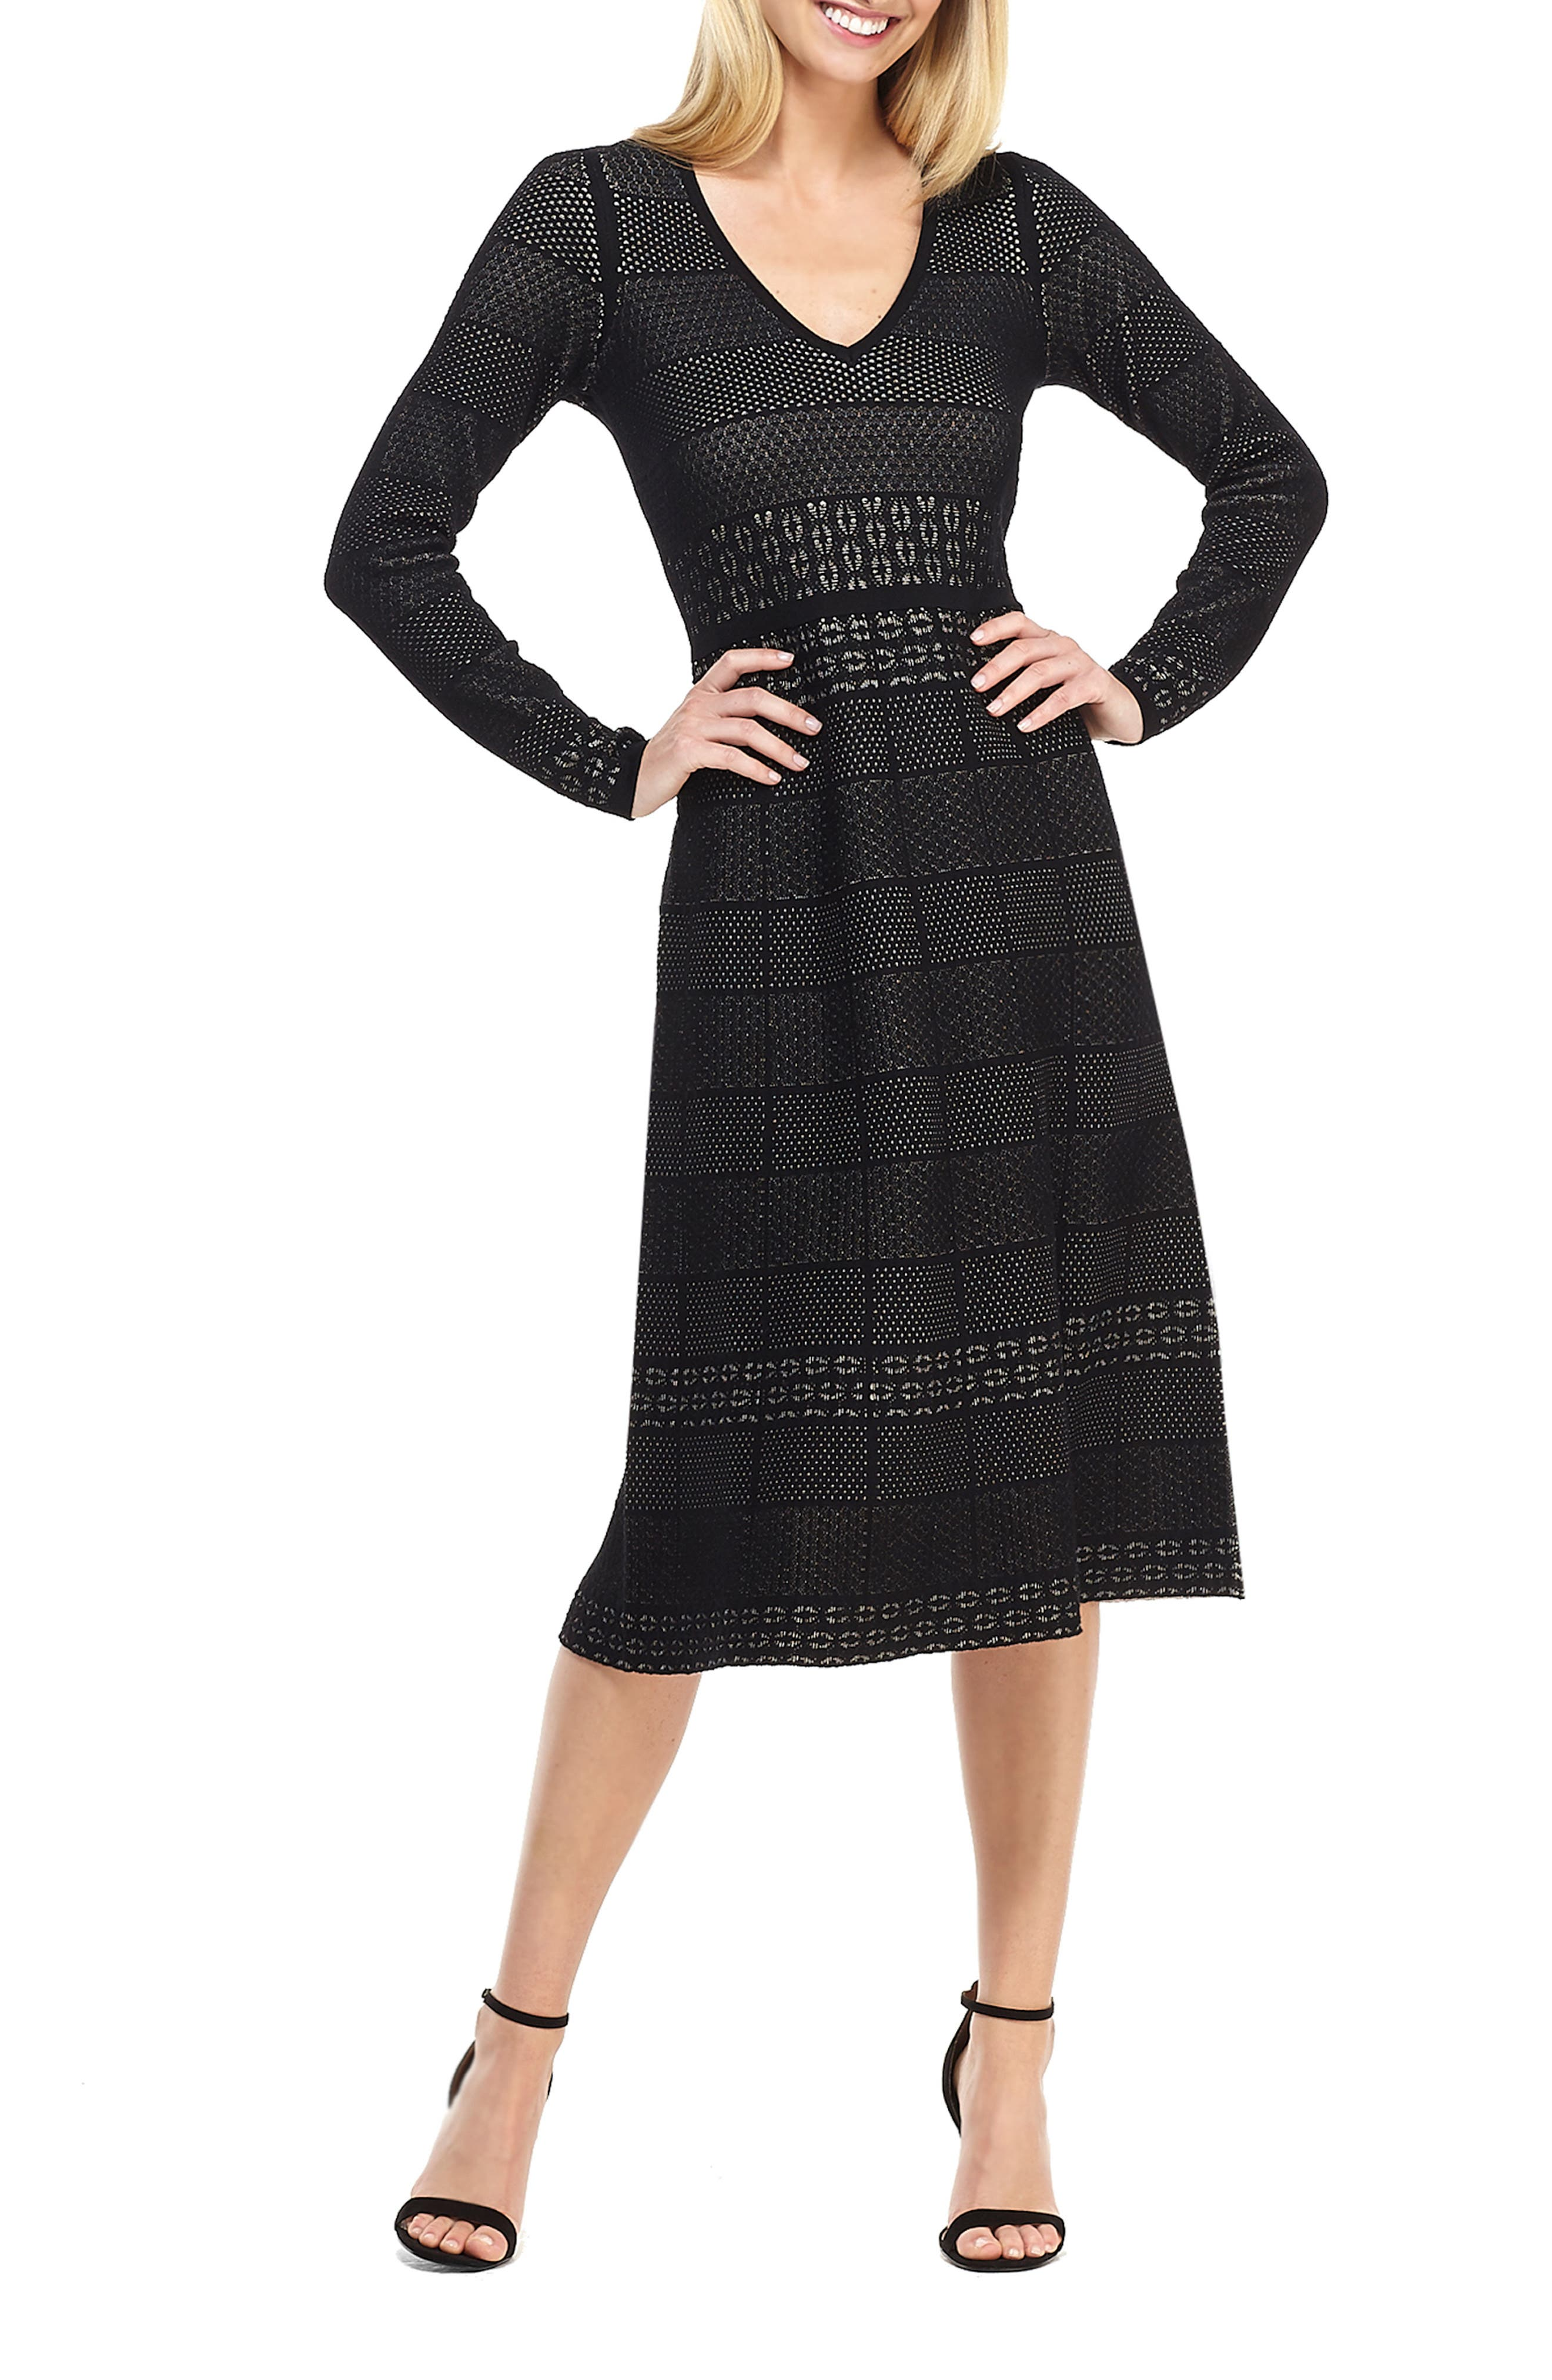 1930s Dresses | 30s Art Deco Dress Womens Gal Meets Glam Collection Heidi Mixed Stitch Long Sleeve Sweater Dress $158.00 AT vintagedancer.com